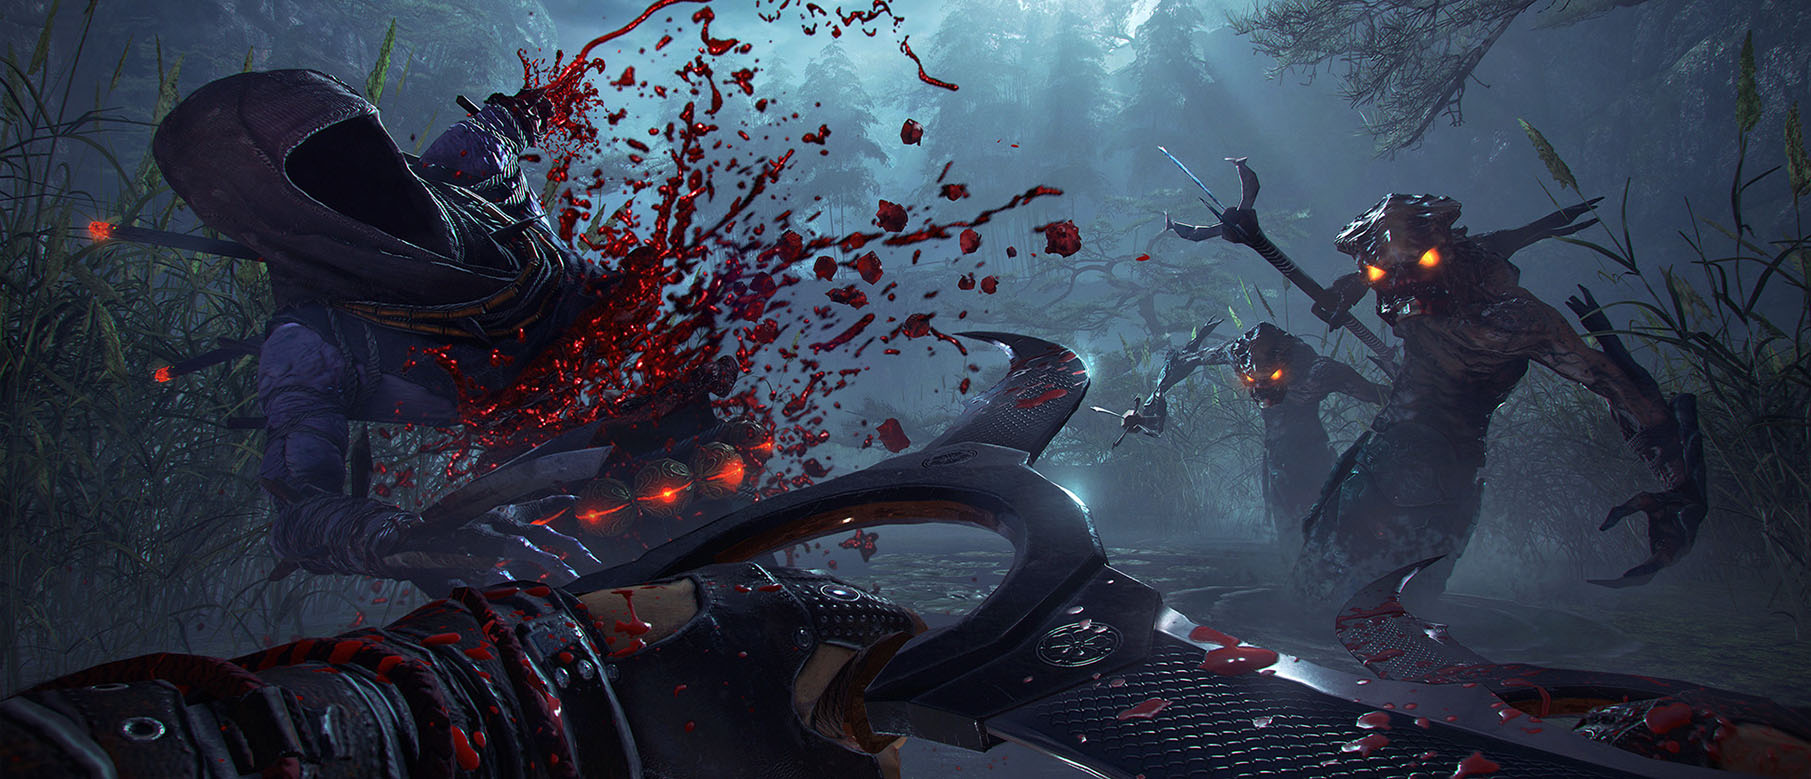 Изображение к Новый геймплей Shadow Warrior 2 из PC-версии